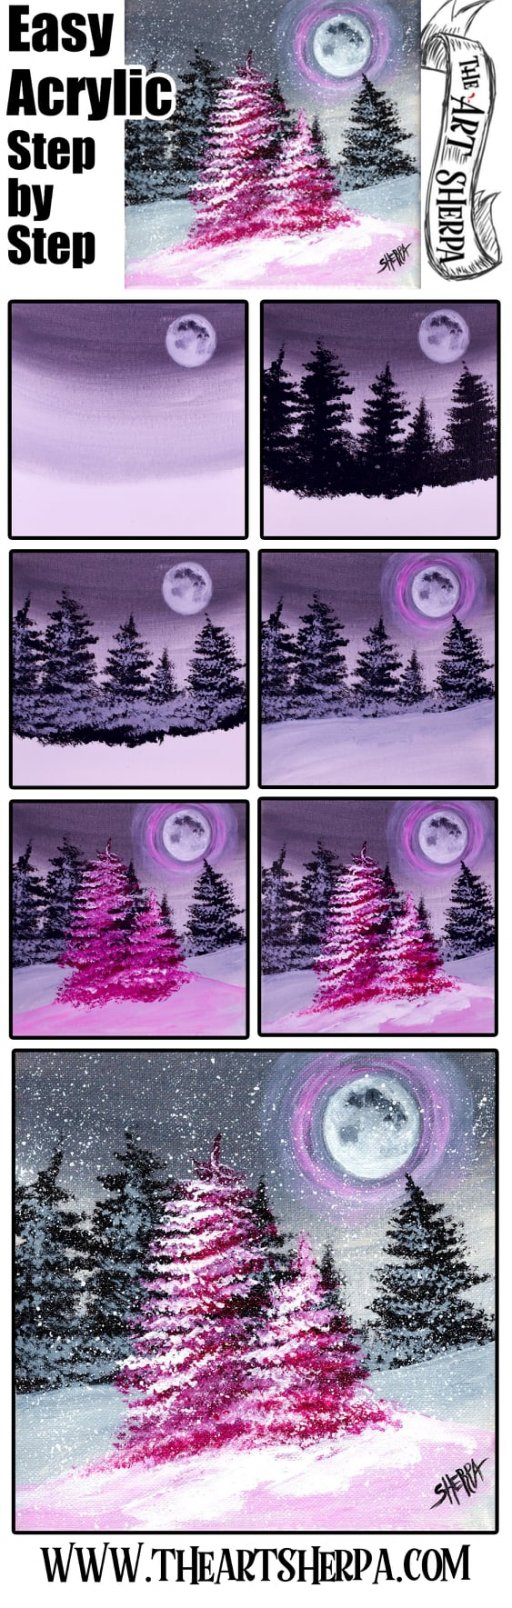 pink tree step by step.jpg